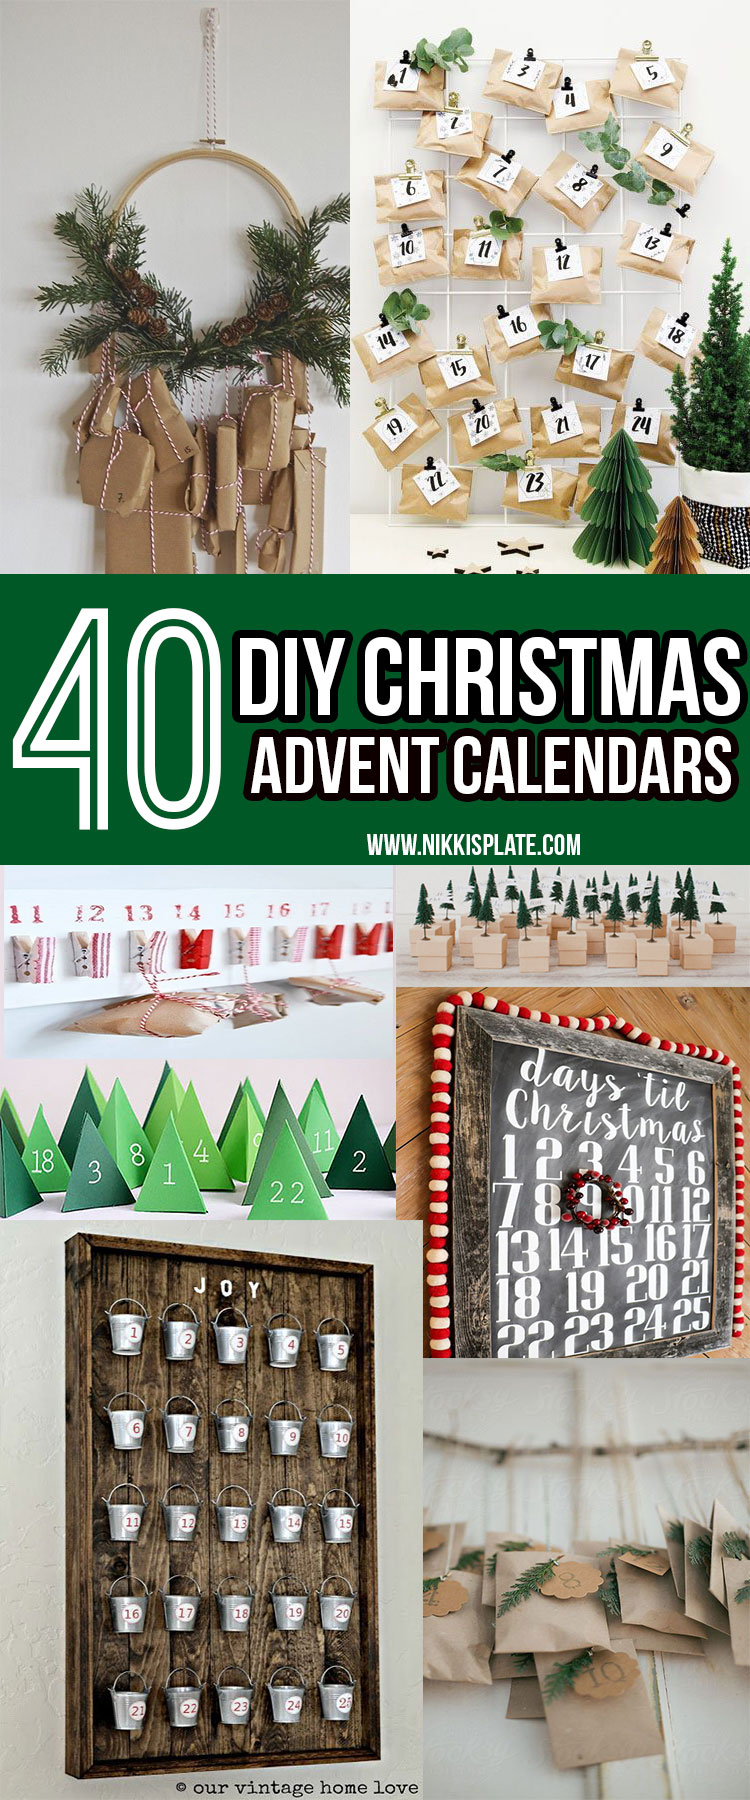 40 DIY Christmas Advent Calendars || Christmas decor, crafts and fun! || Nikki's Plate